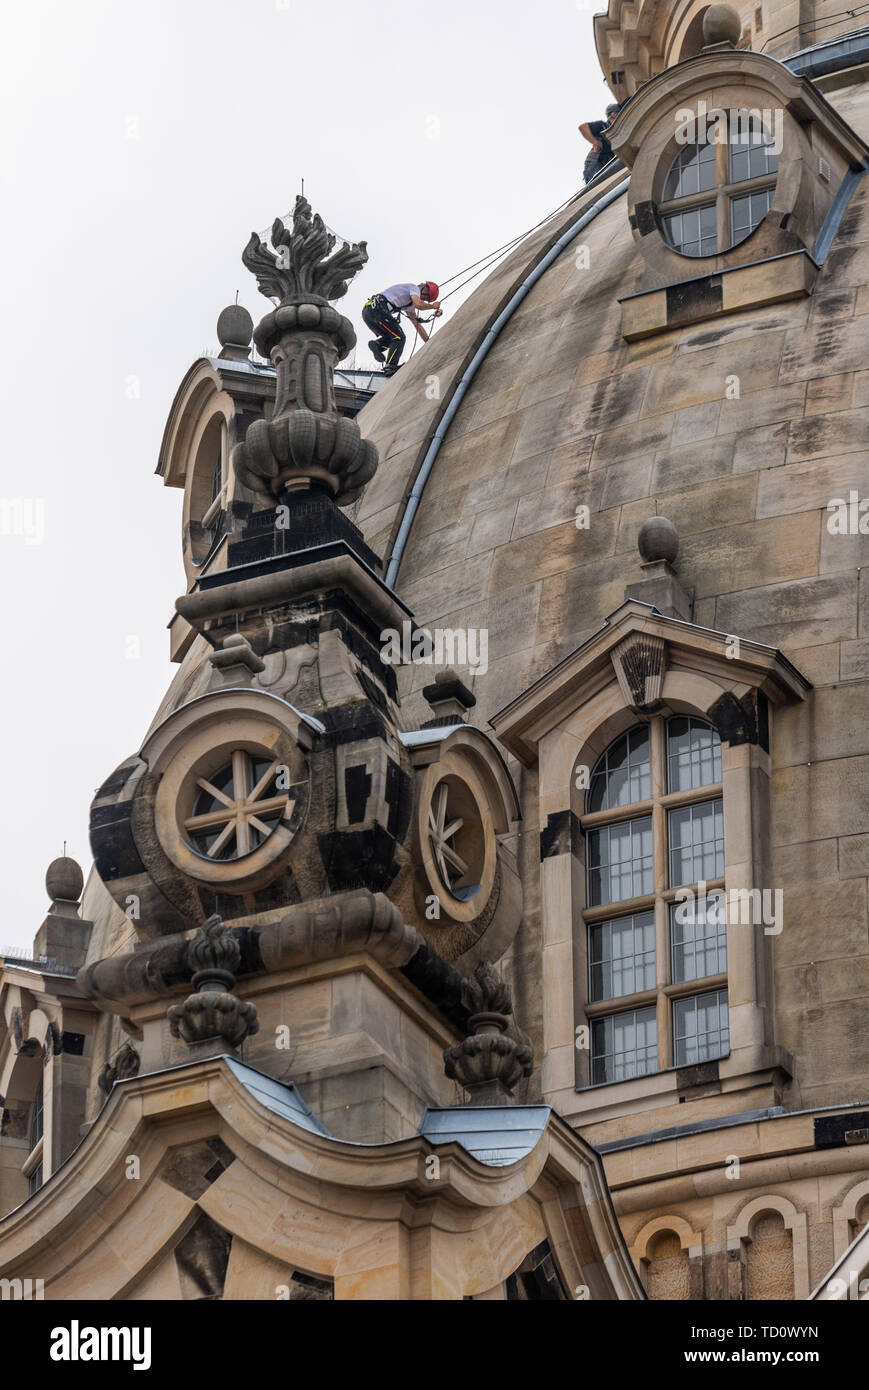 Dresden, Germany. 11th June, 2019. A rope access technician climbs on the dome of the Frauenkirche to renew lights for the evening illumination of the stone dome. Maintenance and replacement work has to be carried out on a total of 40 luminaires on the lantern shaft, the small dome buildings and the rear sides of the staircase tower. The work is necessary because the light from the previous luminaires no longer reflects sufficiently from the darkening stone. Credit: Robert Michael/dpa-Zentralbild/dpa/Alamy Live News - Stock Image